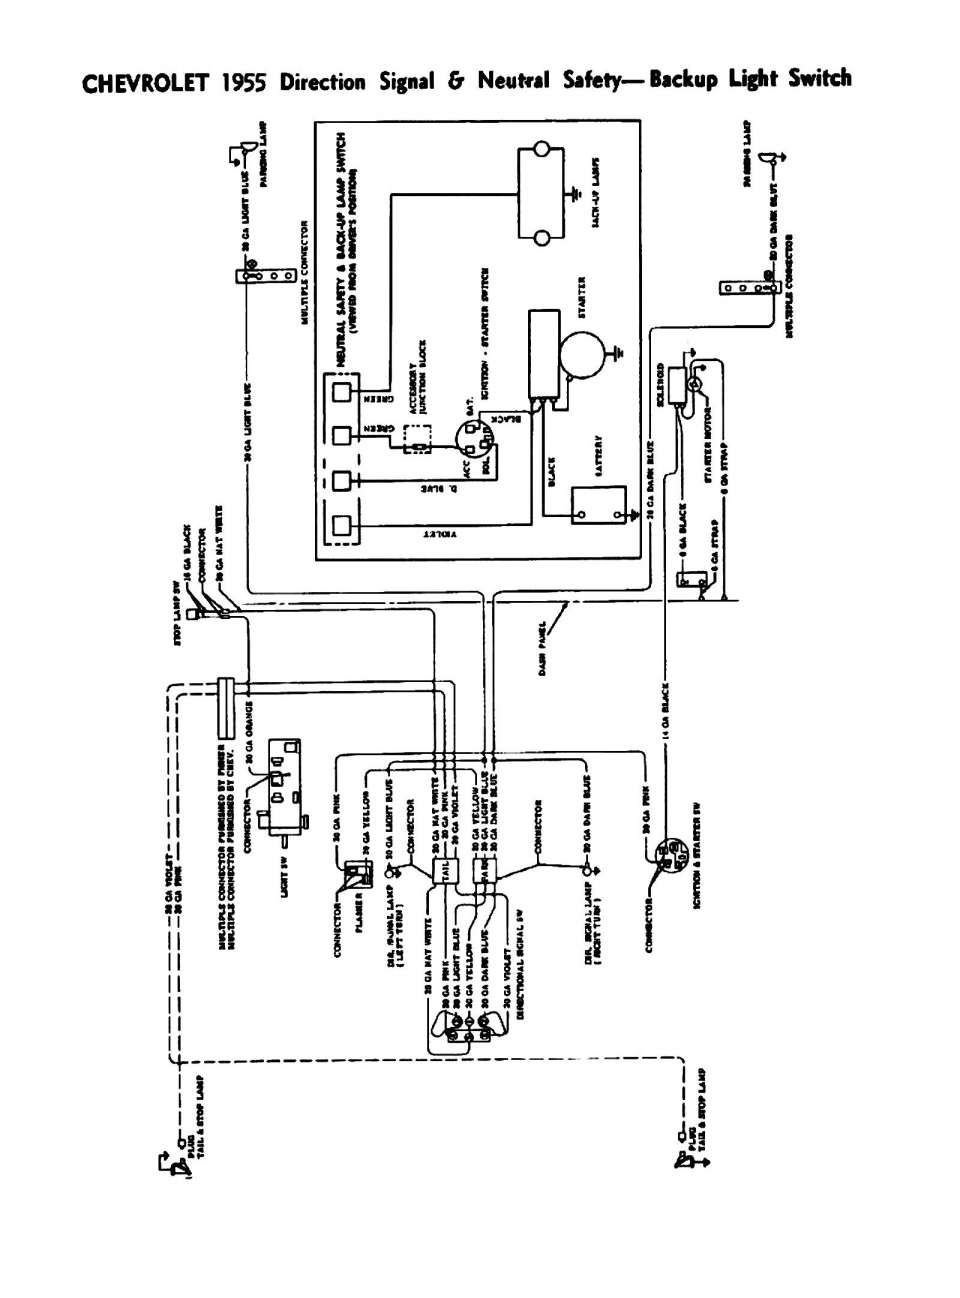 16 1957 Chevy Truck Ignition Switch Wiring Diagram Chevy Trucks Electrical Wiring Diagram Chevy